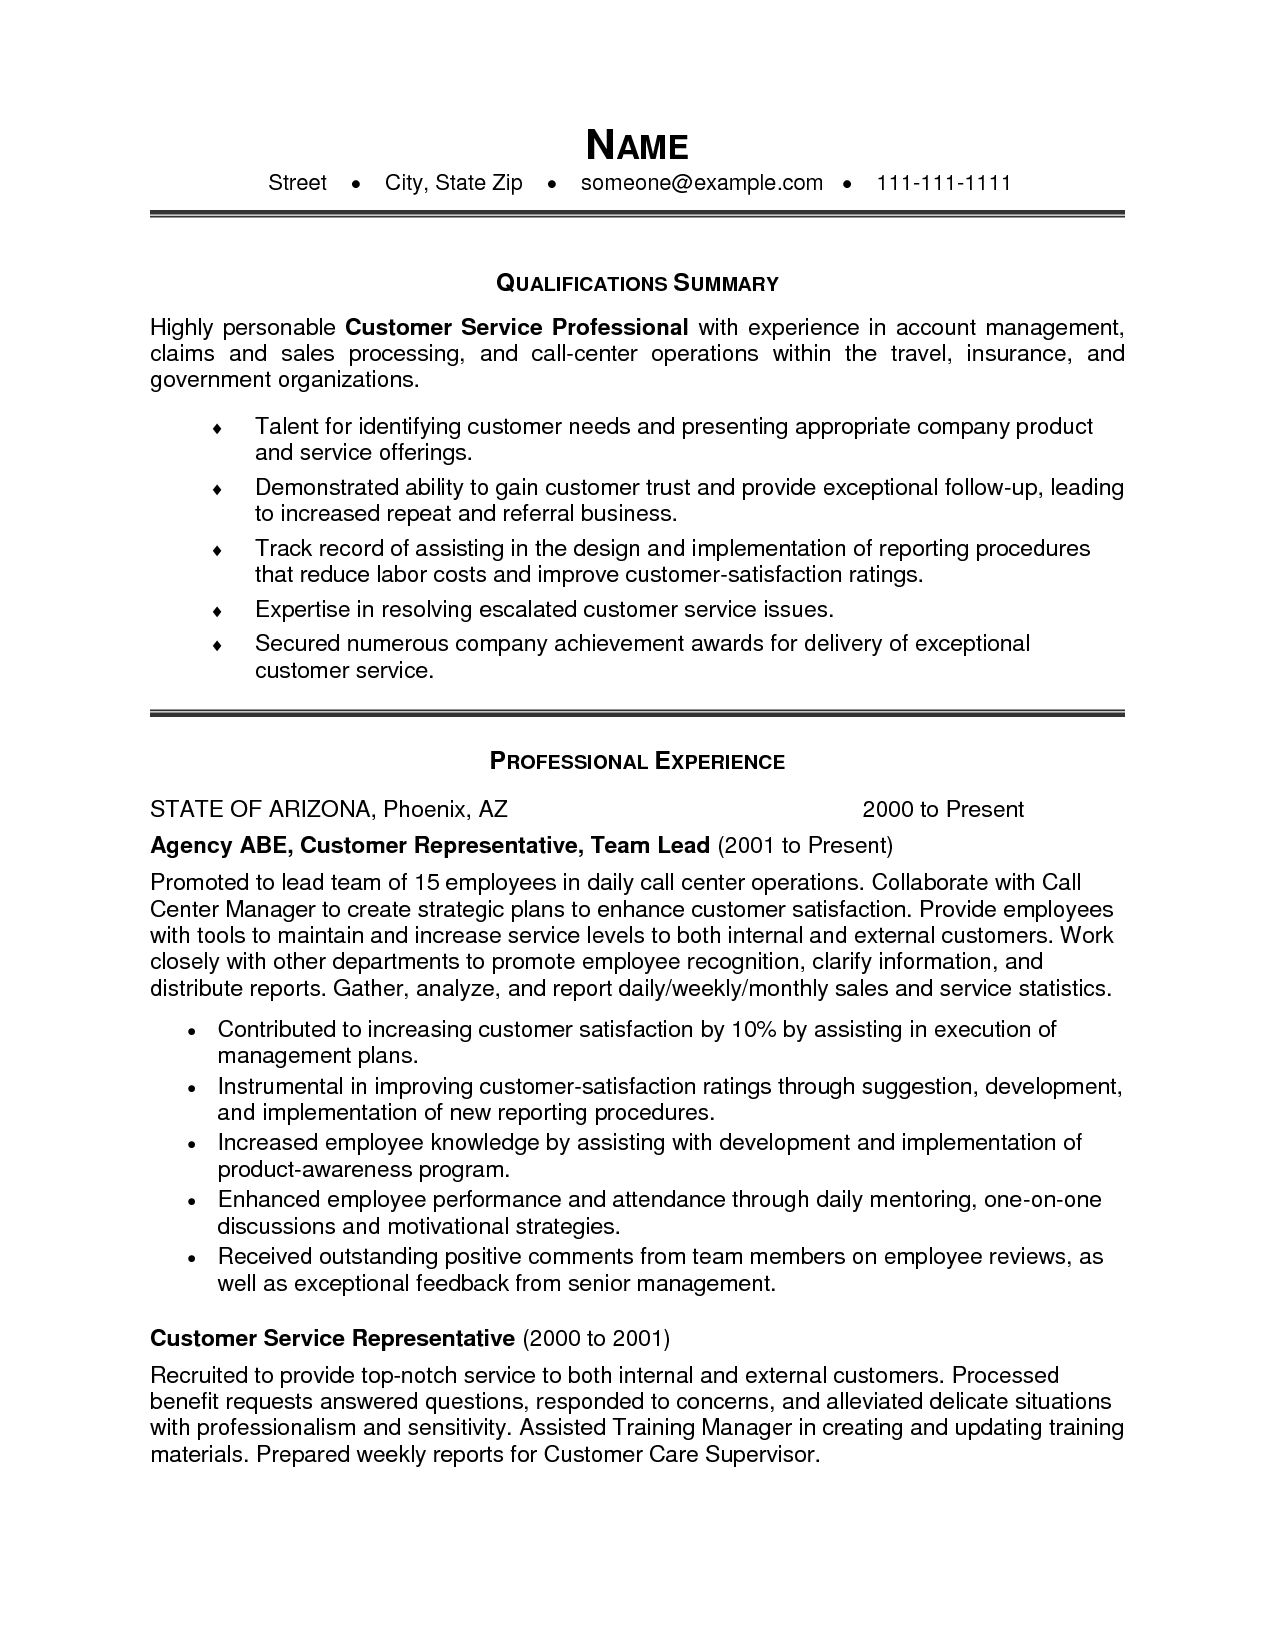 new customer service resume summary examples template for current college student avaya Resume Resume Summary Examples For Customer Service